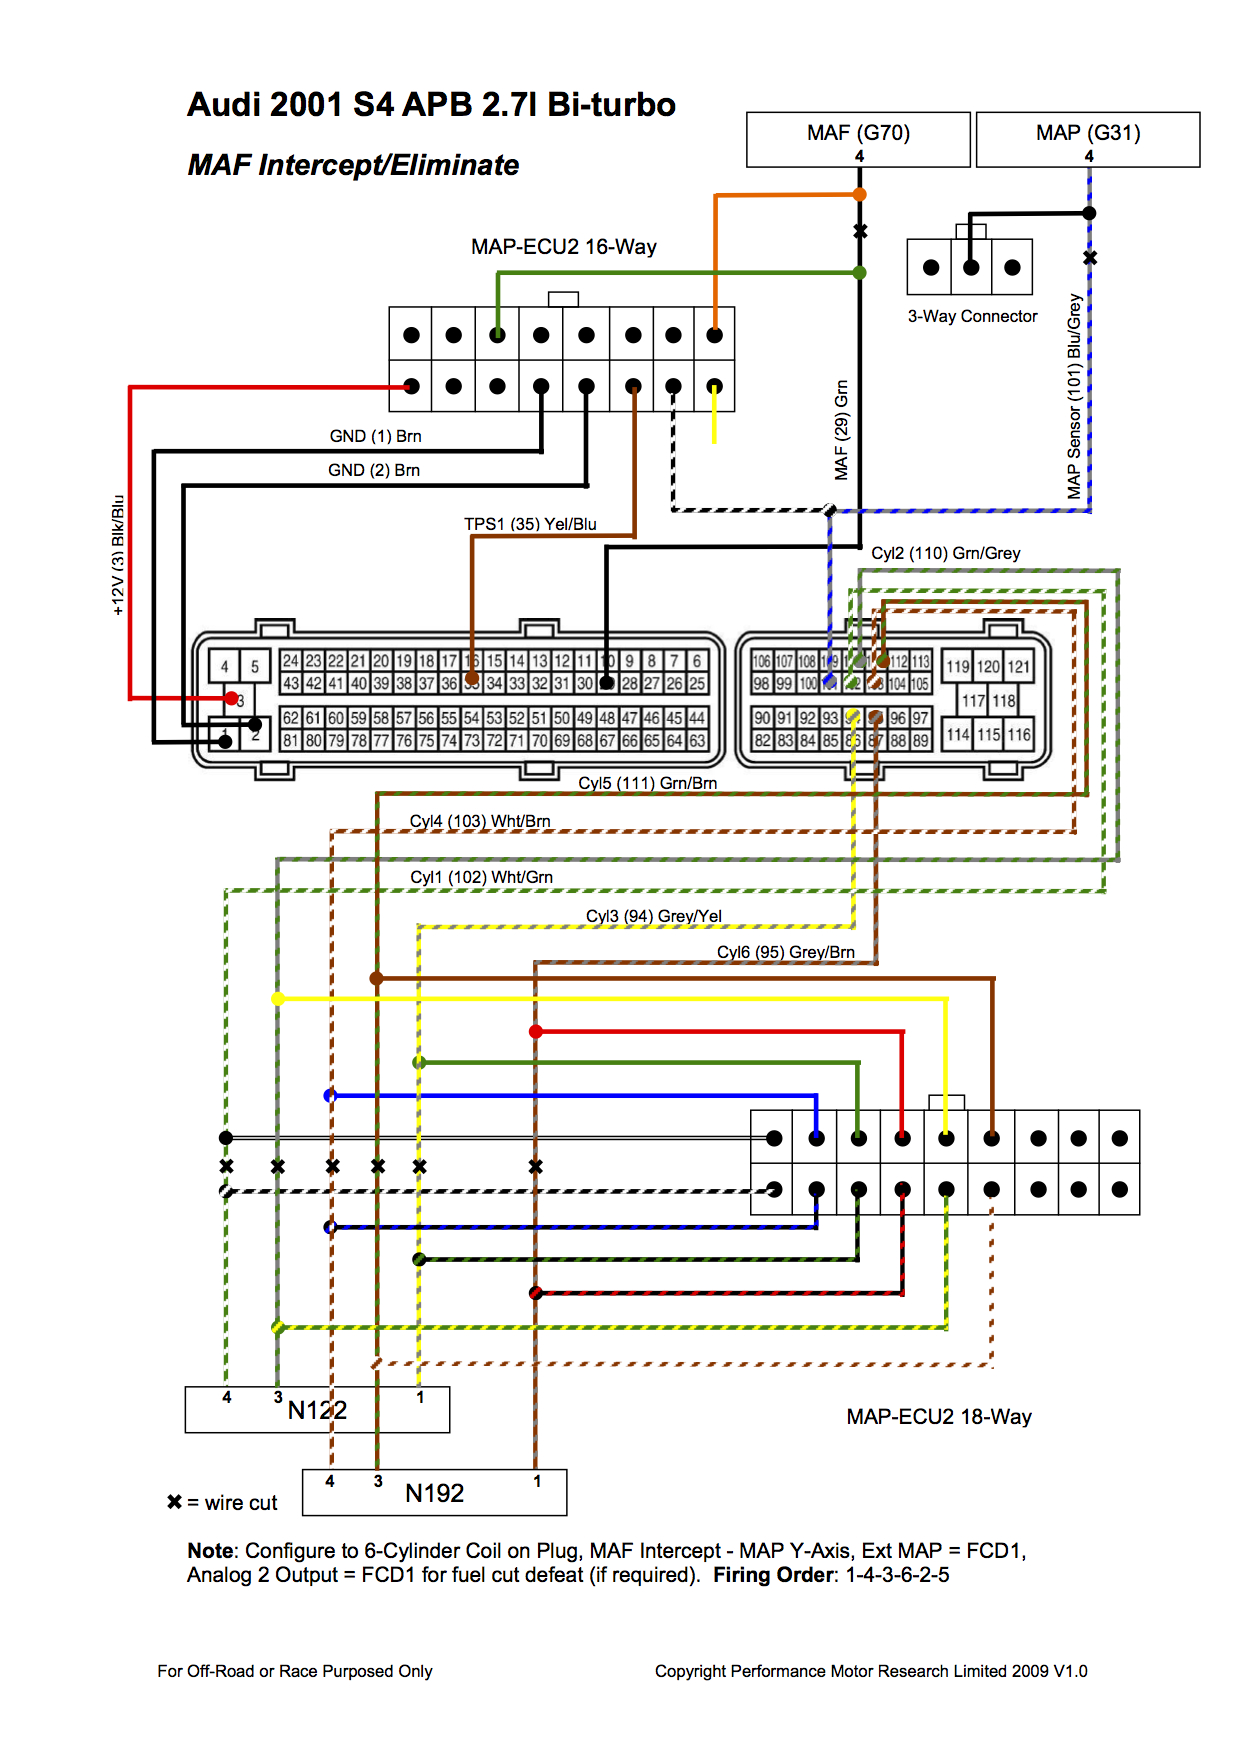 Ecm Circuit Wiring Diagram The Portal And Forum Of 1999 Ranger Computer Ecu Pdf Third Level Rh 11 9 Jacobwinterstein Com 2010 Equinox Gm